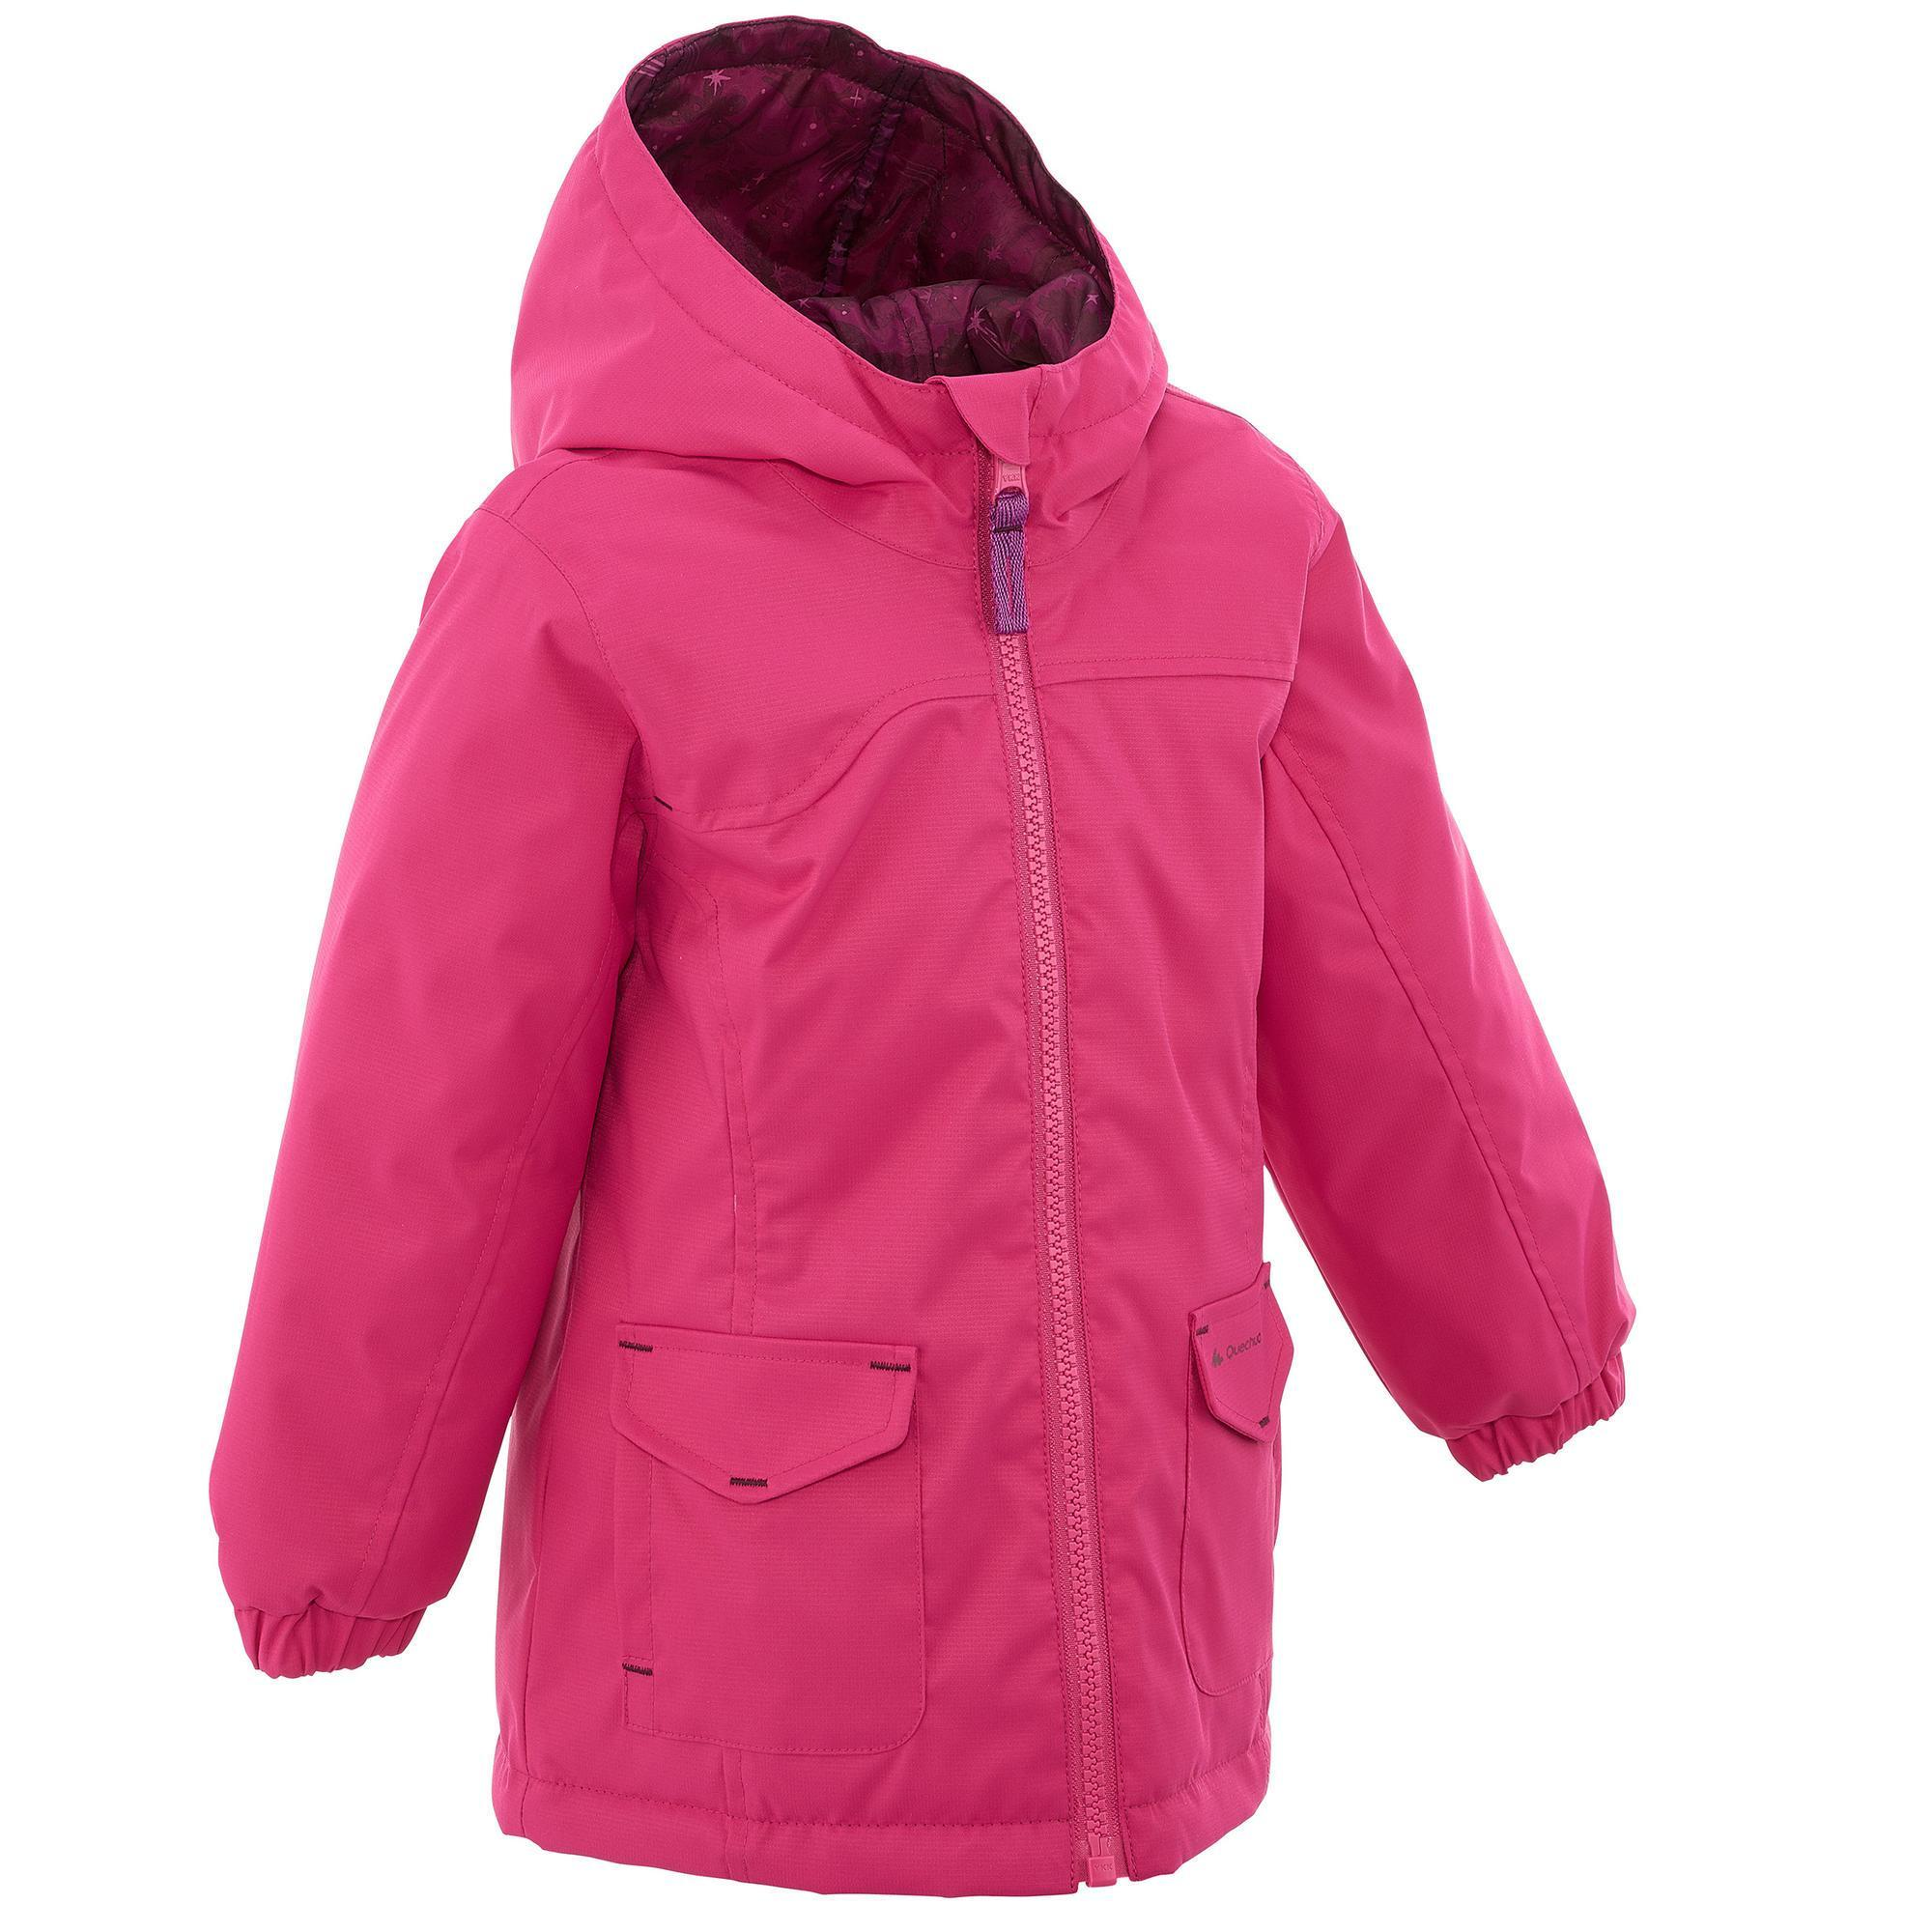 Hike 100 Girl's Hiking Warm Waterproof Jacket - Pink | Quechua